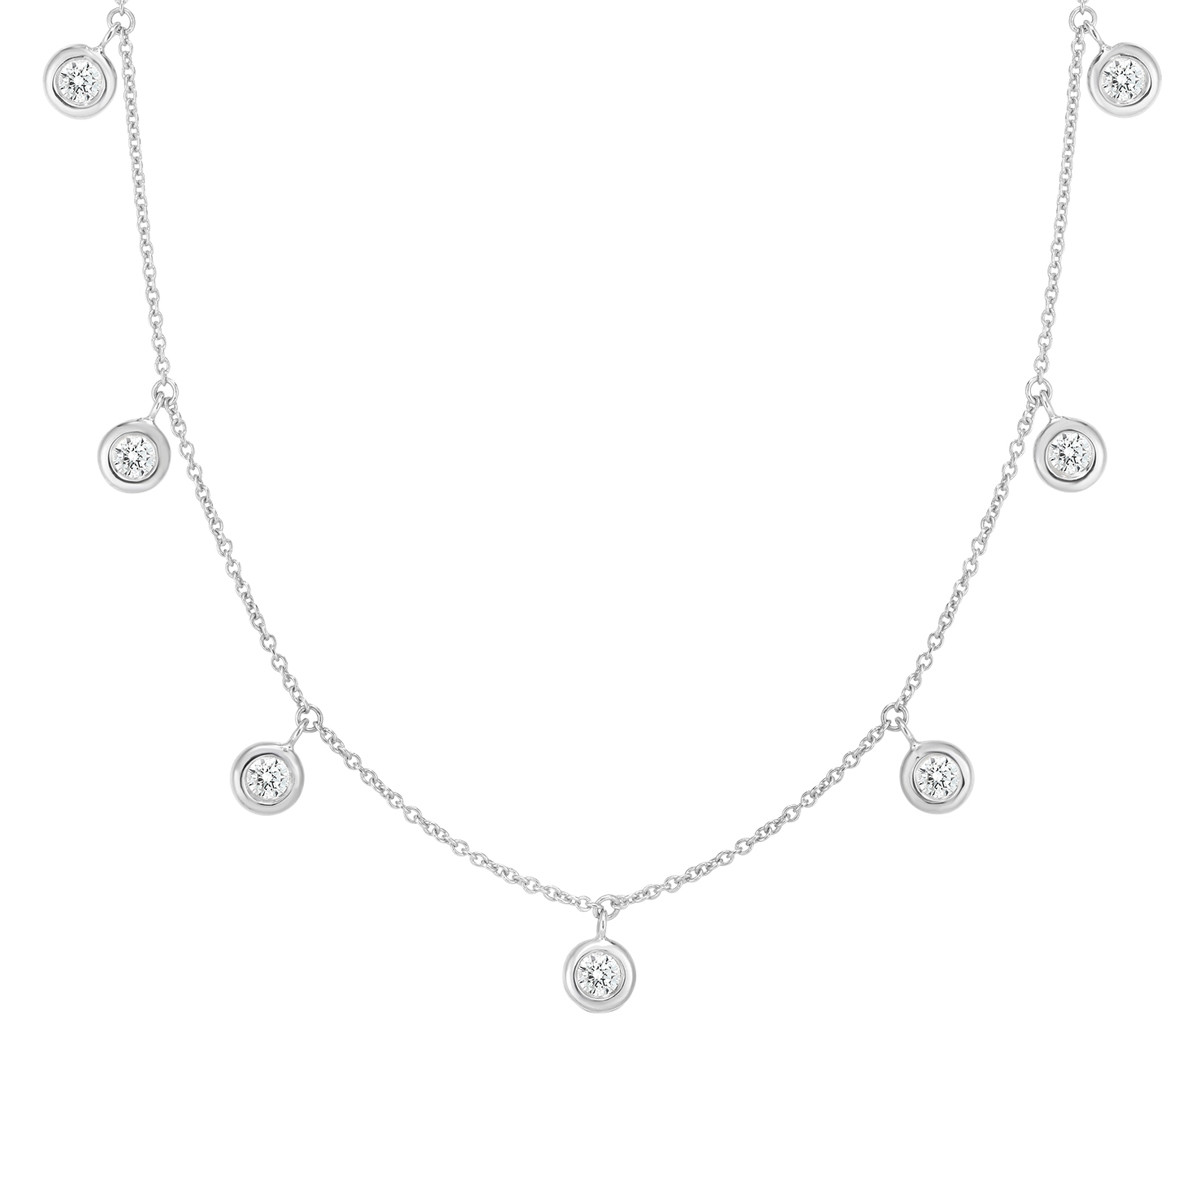 18k White Gold Bezel-Set Diamond Dangle Necklace